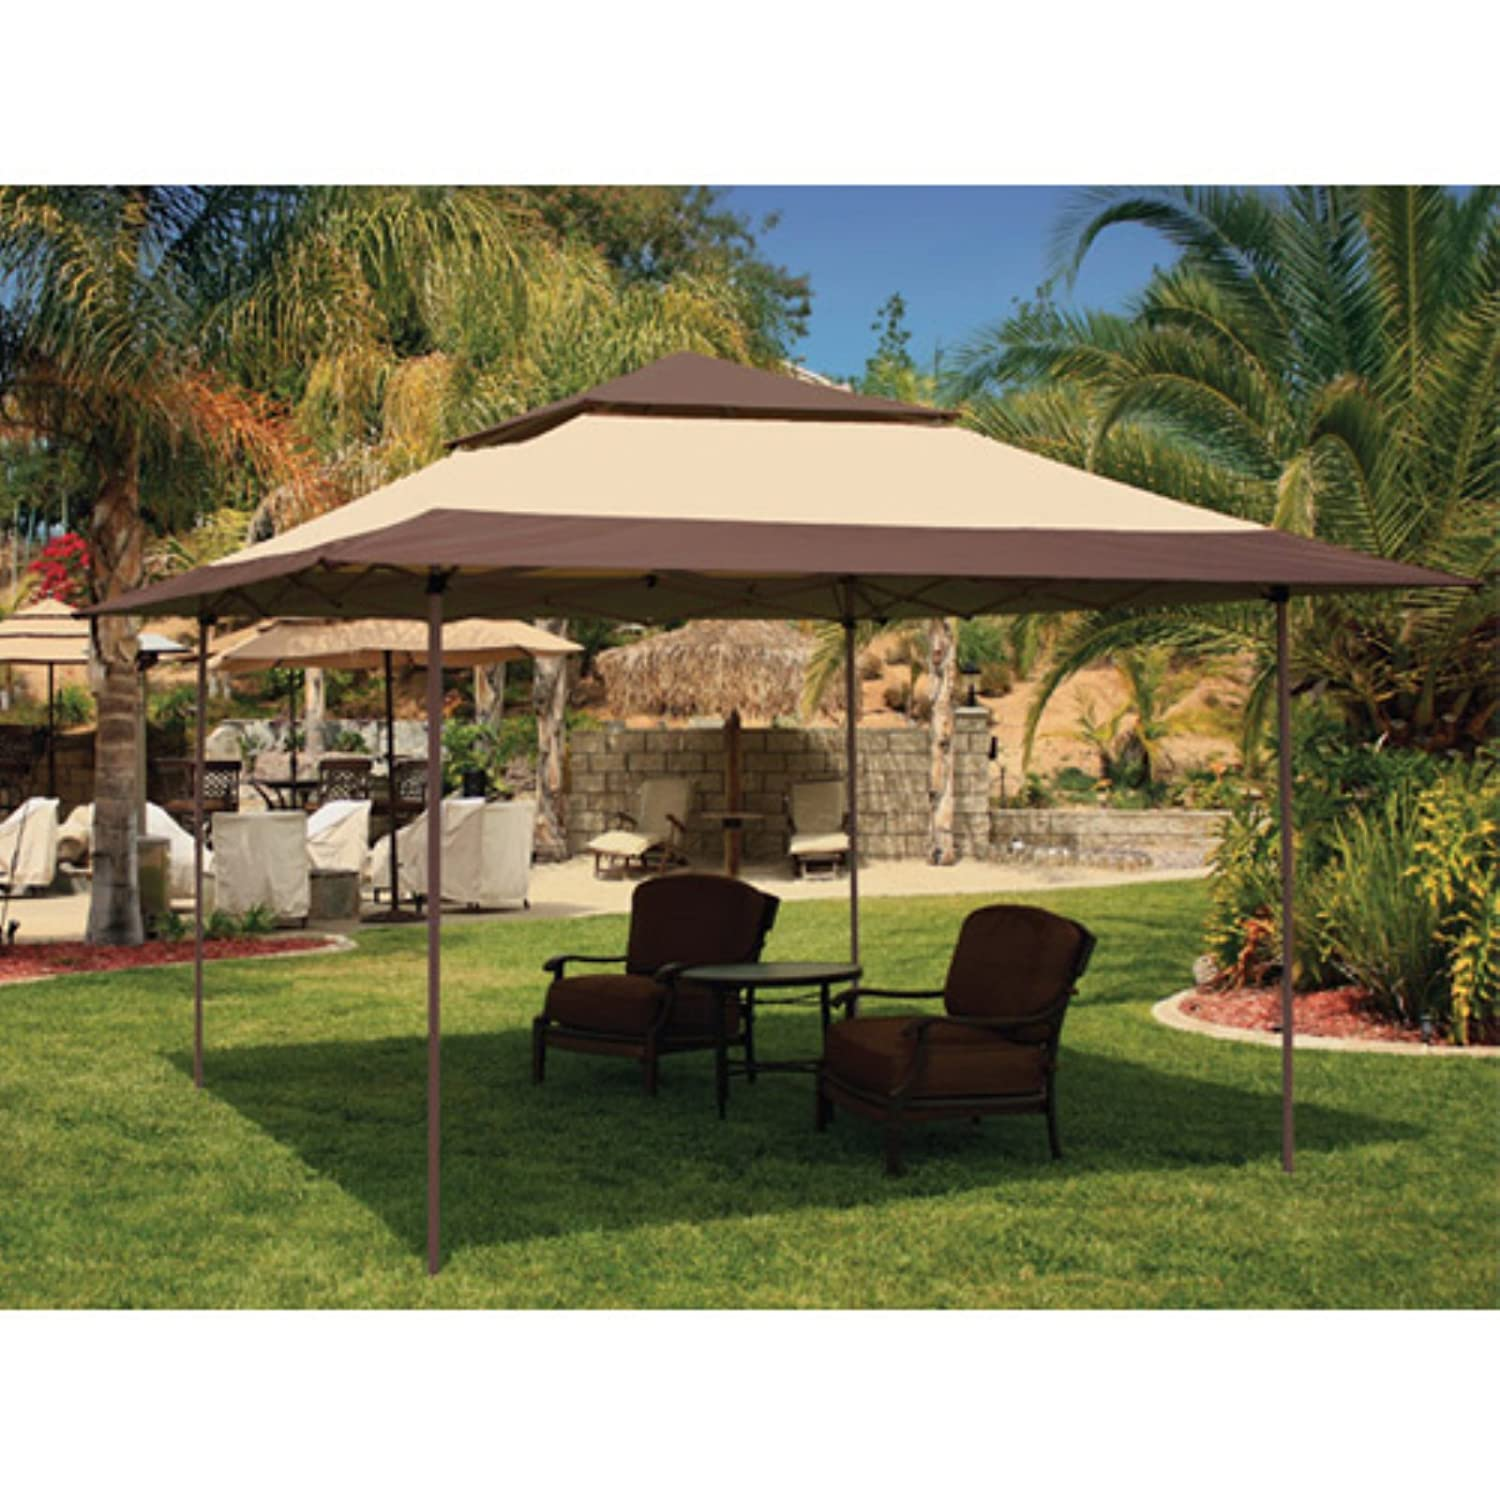 Design Backyard Canopy amazon com e z up 13 x pagoda gazebo canopy outdoor canopies garden outdoor